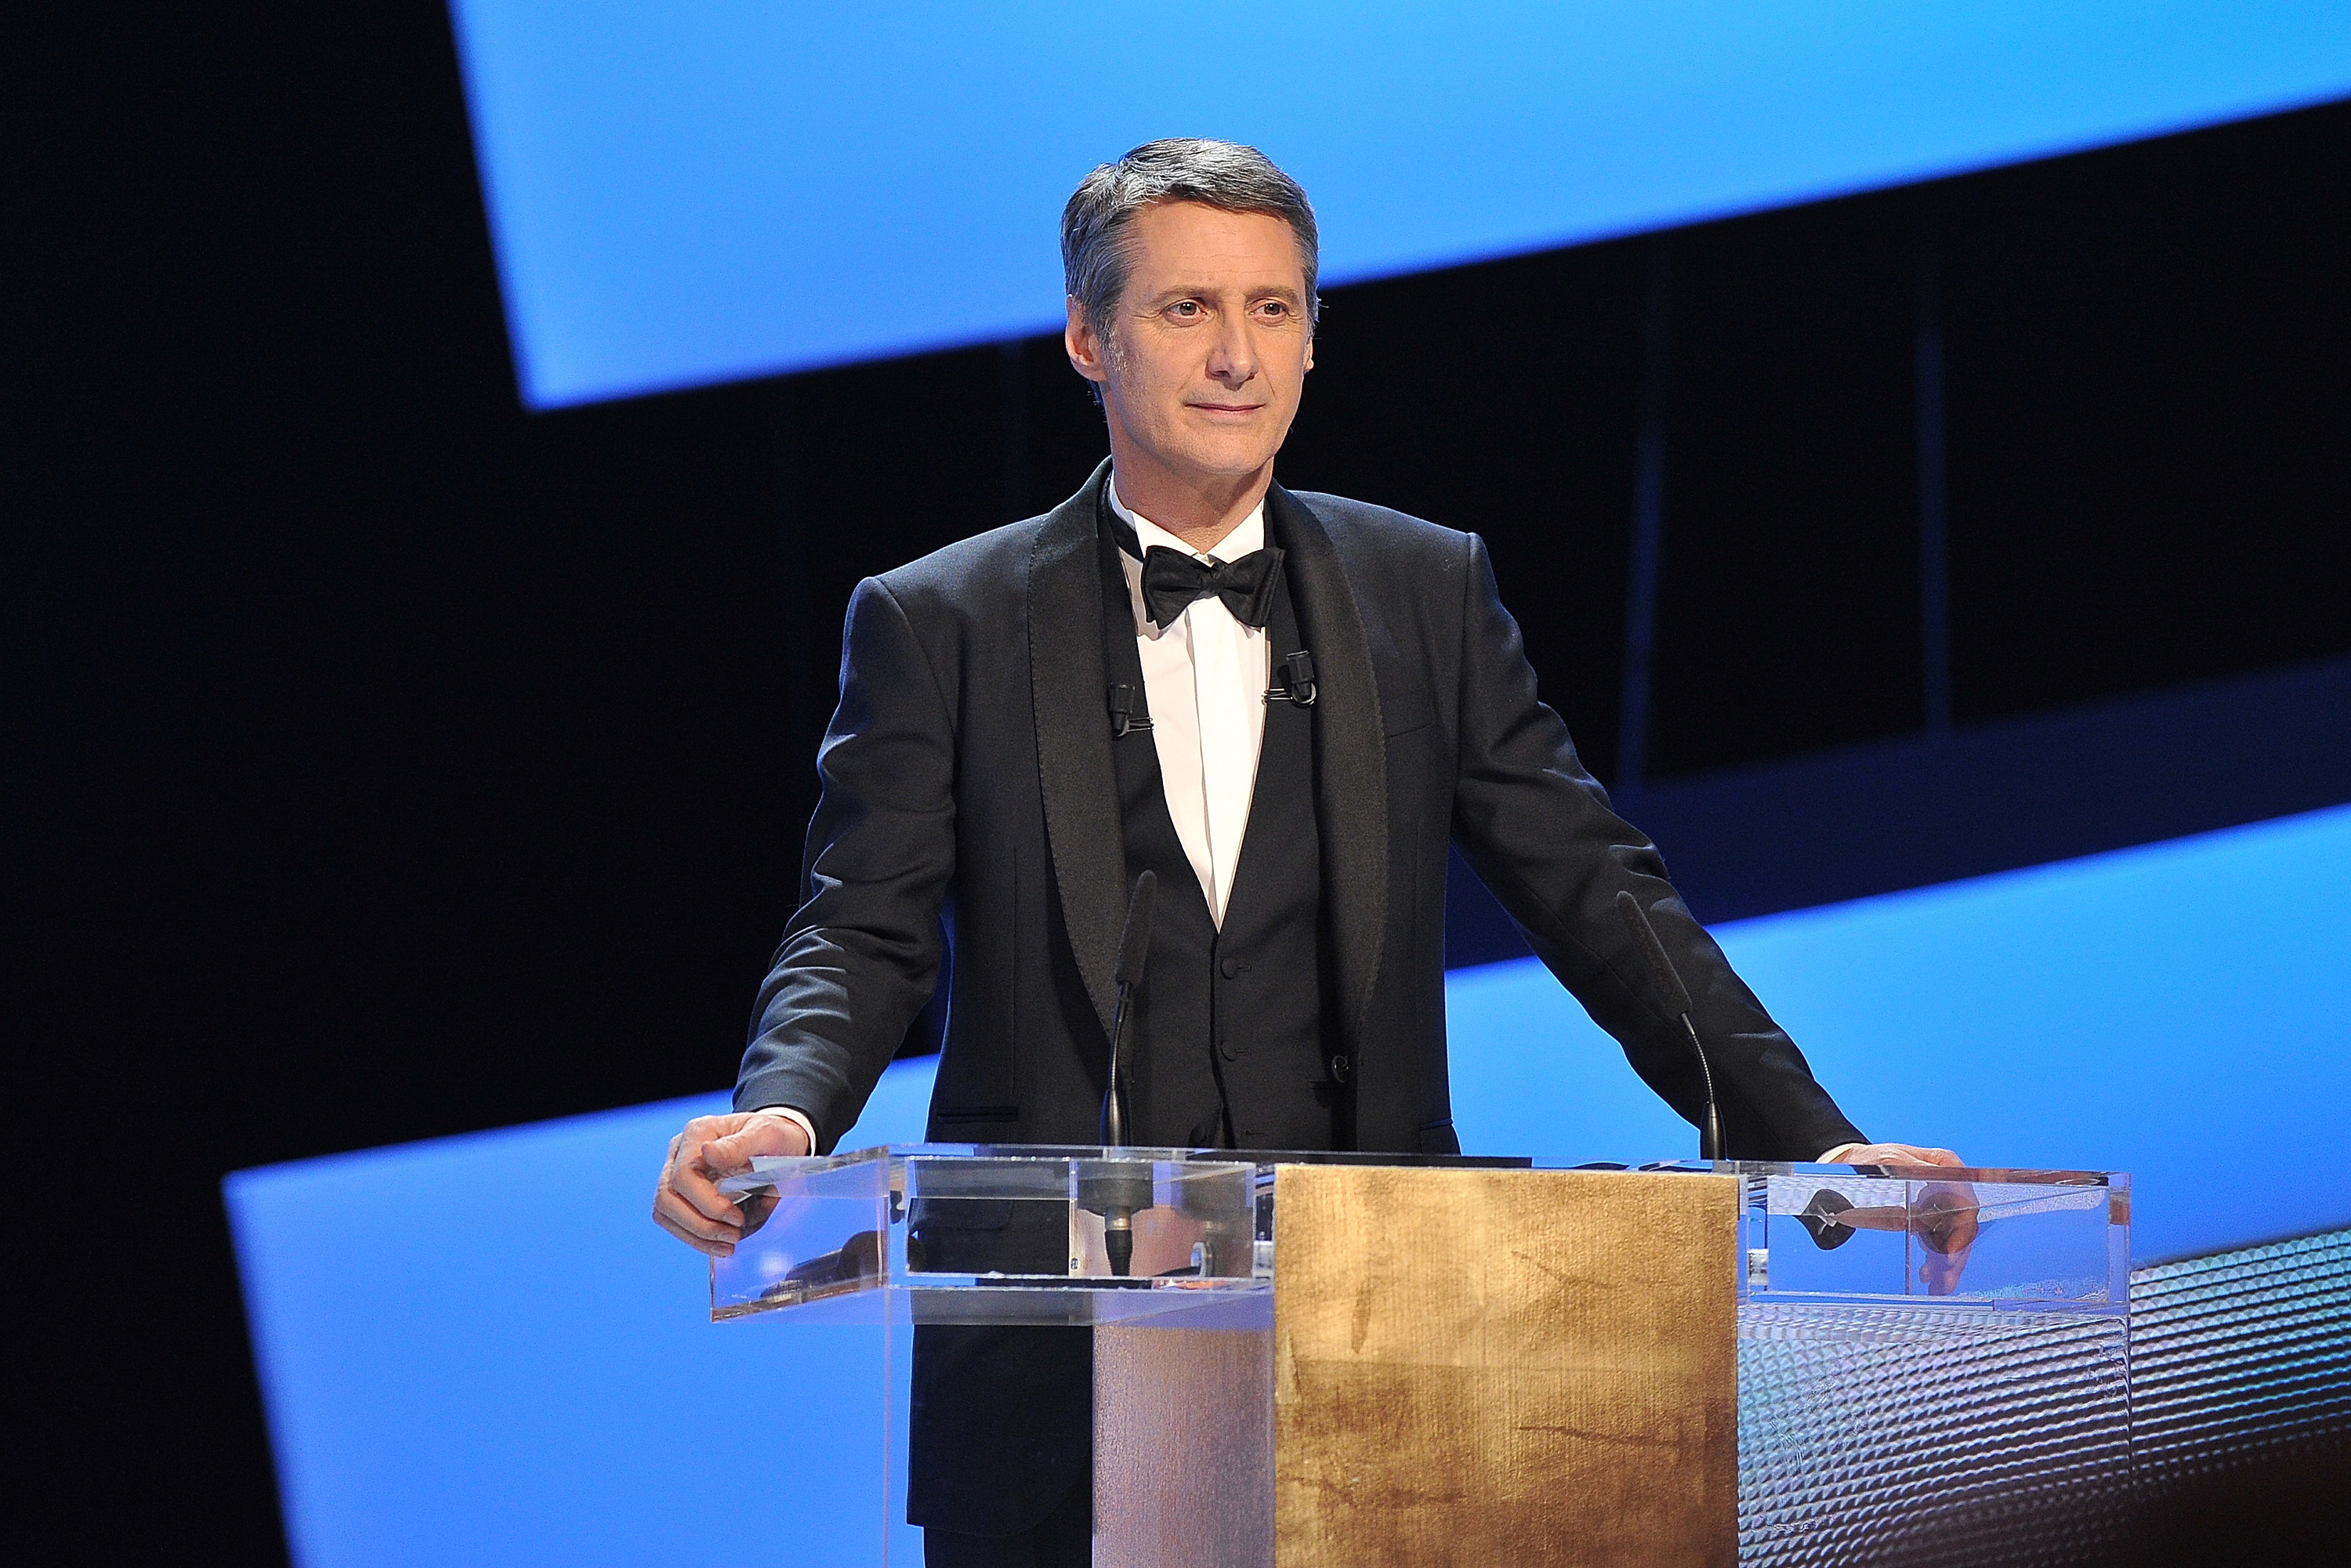 PARIS, FRANCE - FEBRUARY 24: Host Antoine de Caunes speaks on stage during the 37th Cesar Film Awards at Theatre du Chatelet on February 24, 2012 in Paris, France. (Photo by Pascal Le Segretain/Getty Images)